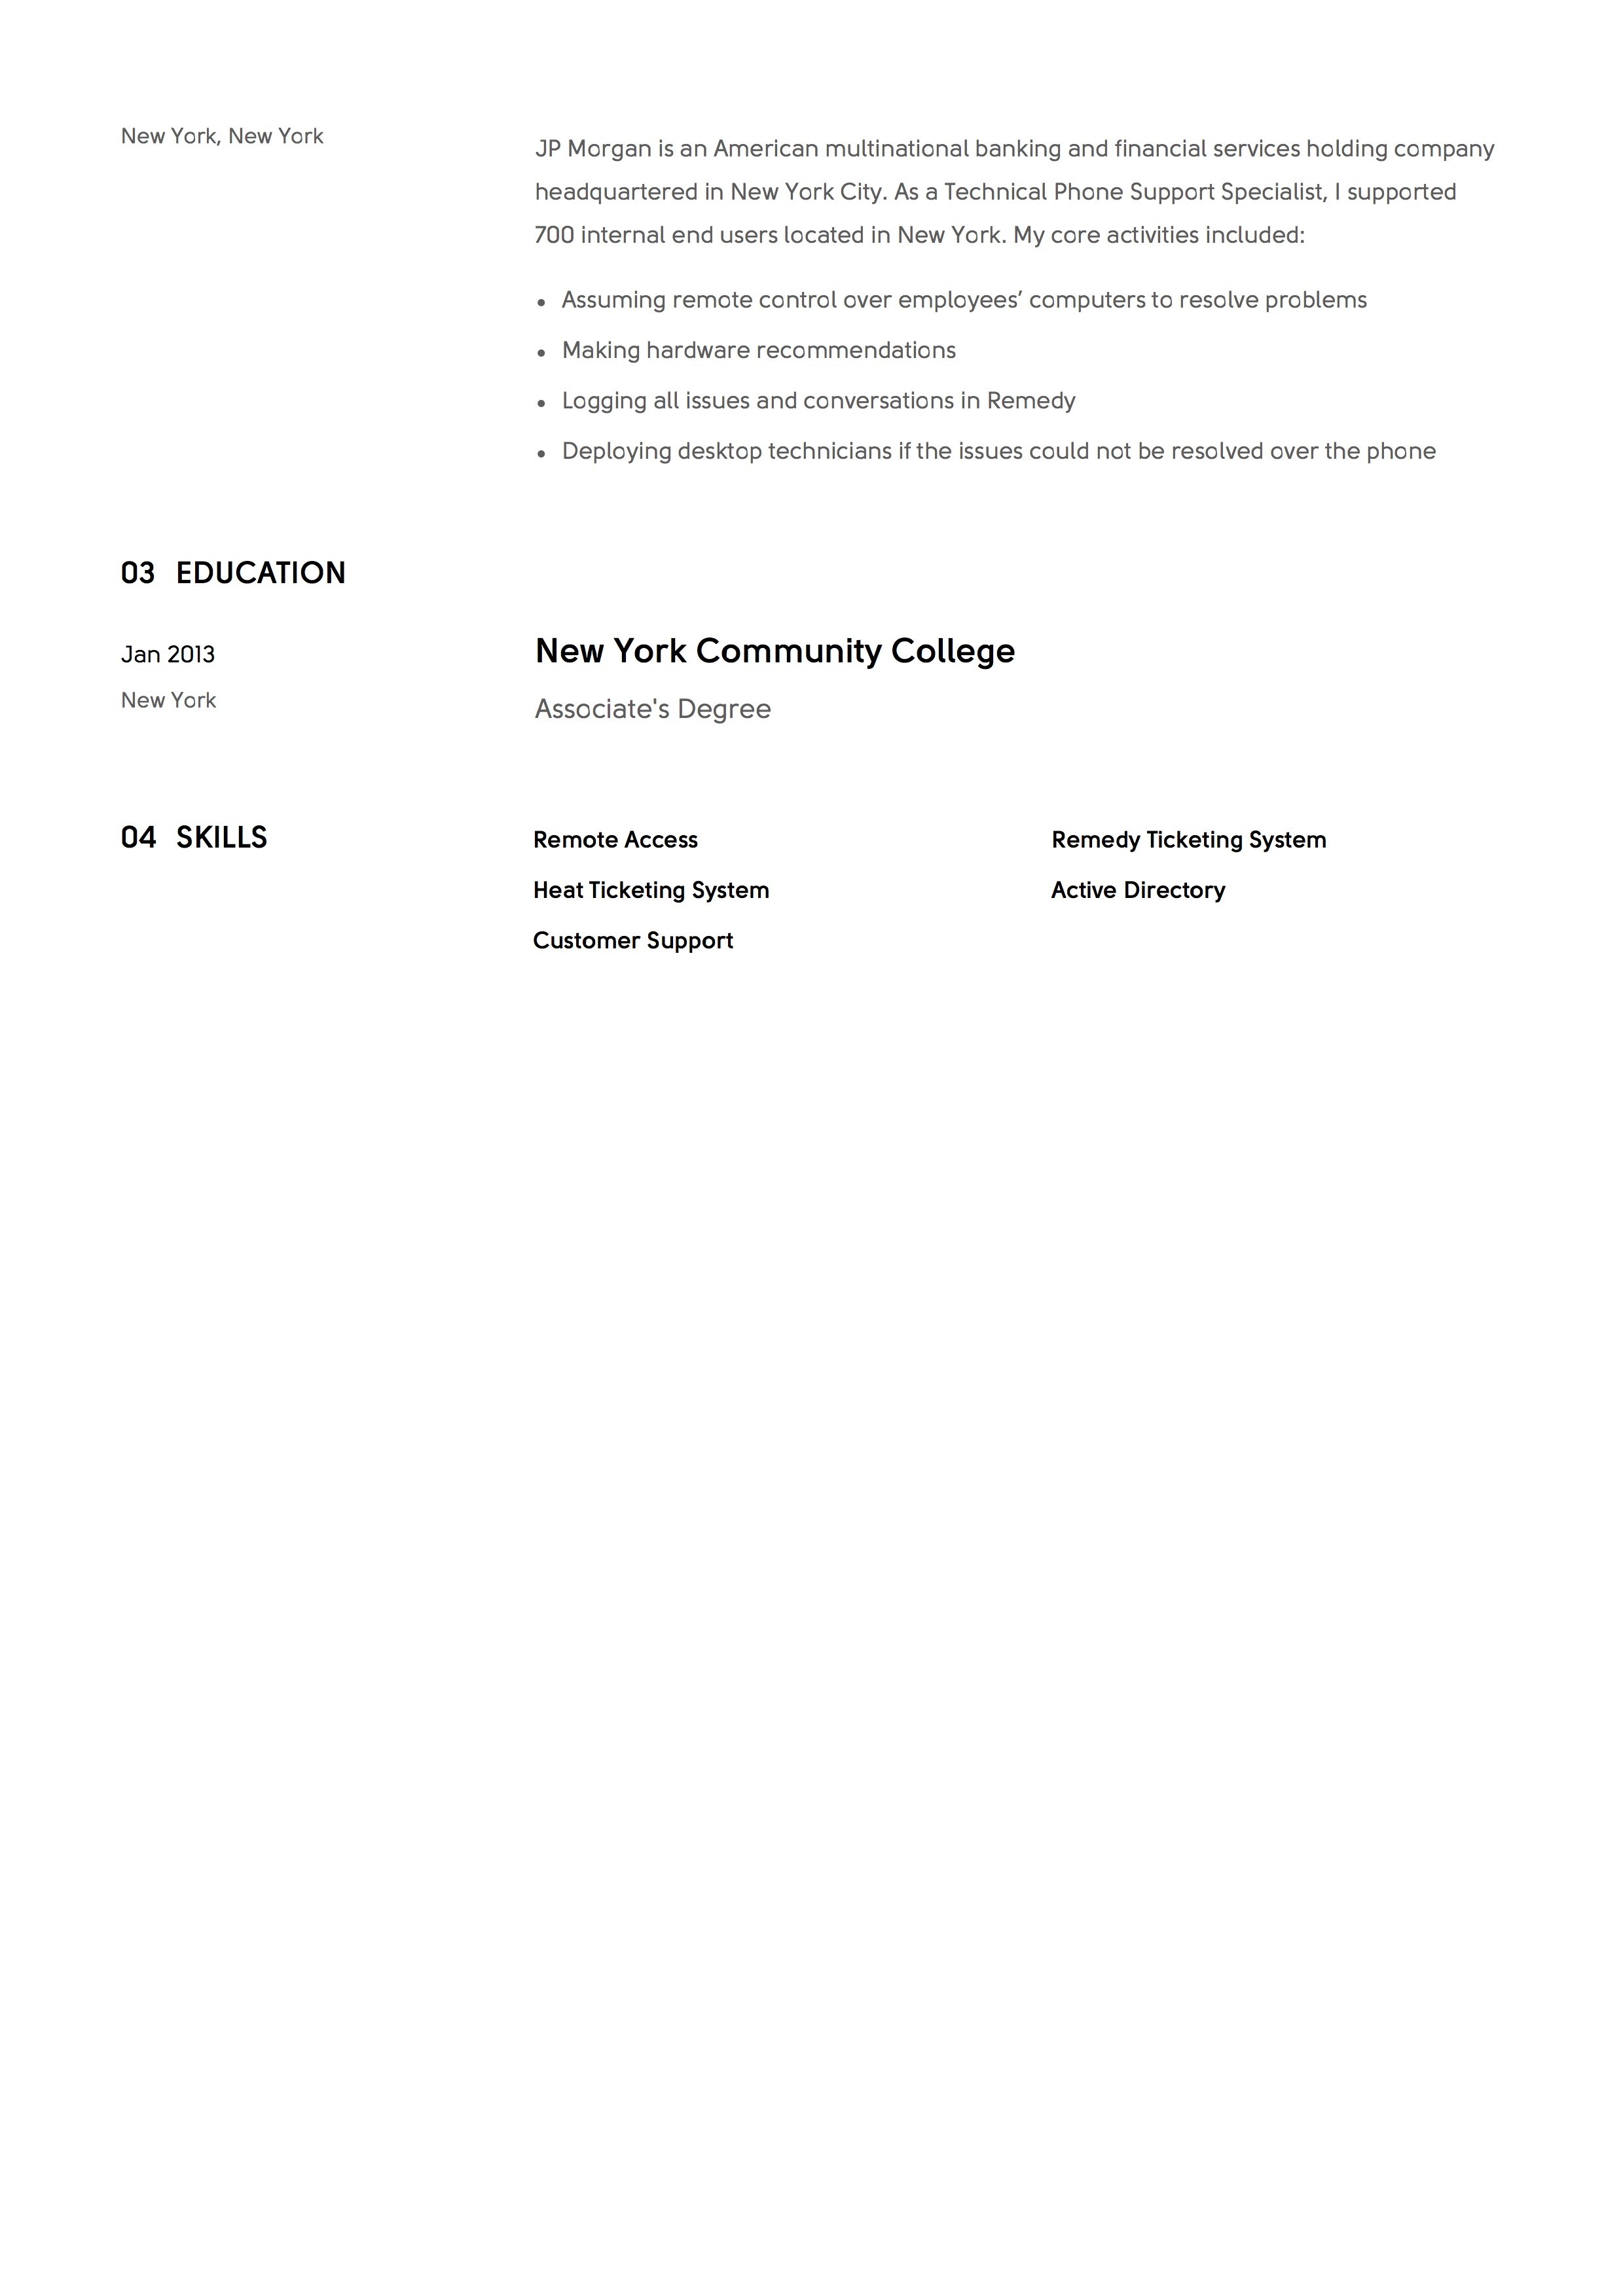 Sample Resume Technical Phone Support 2